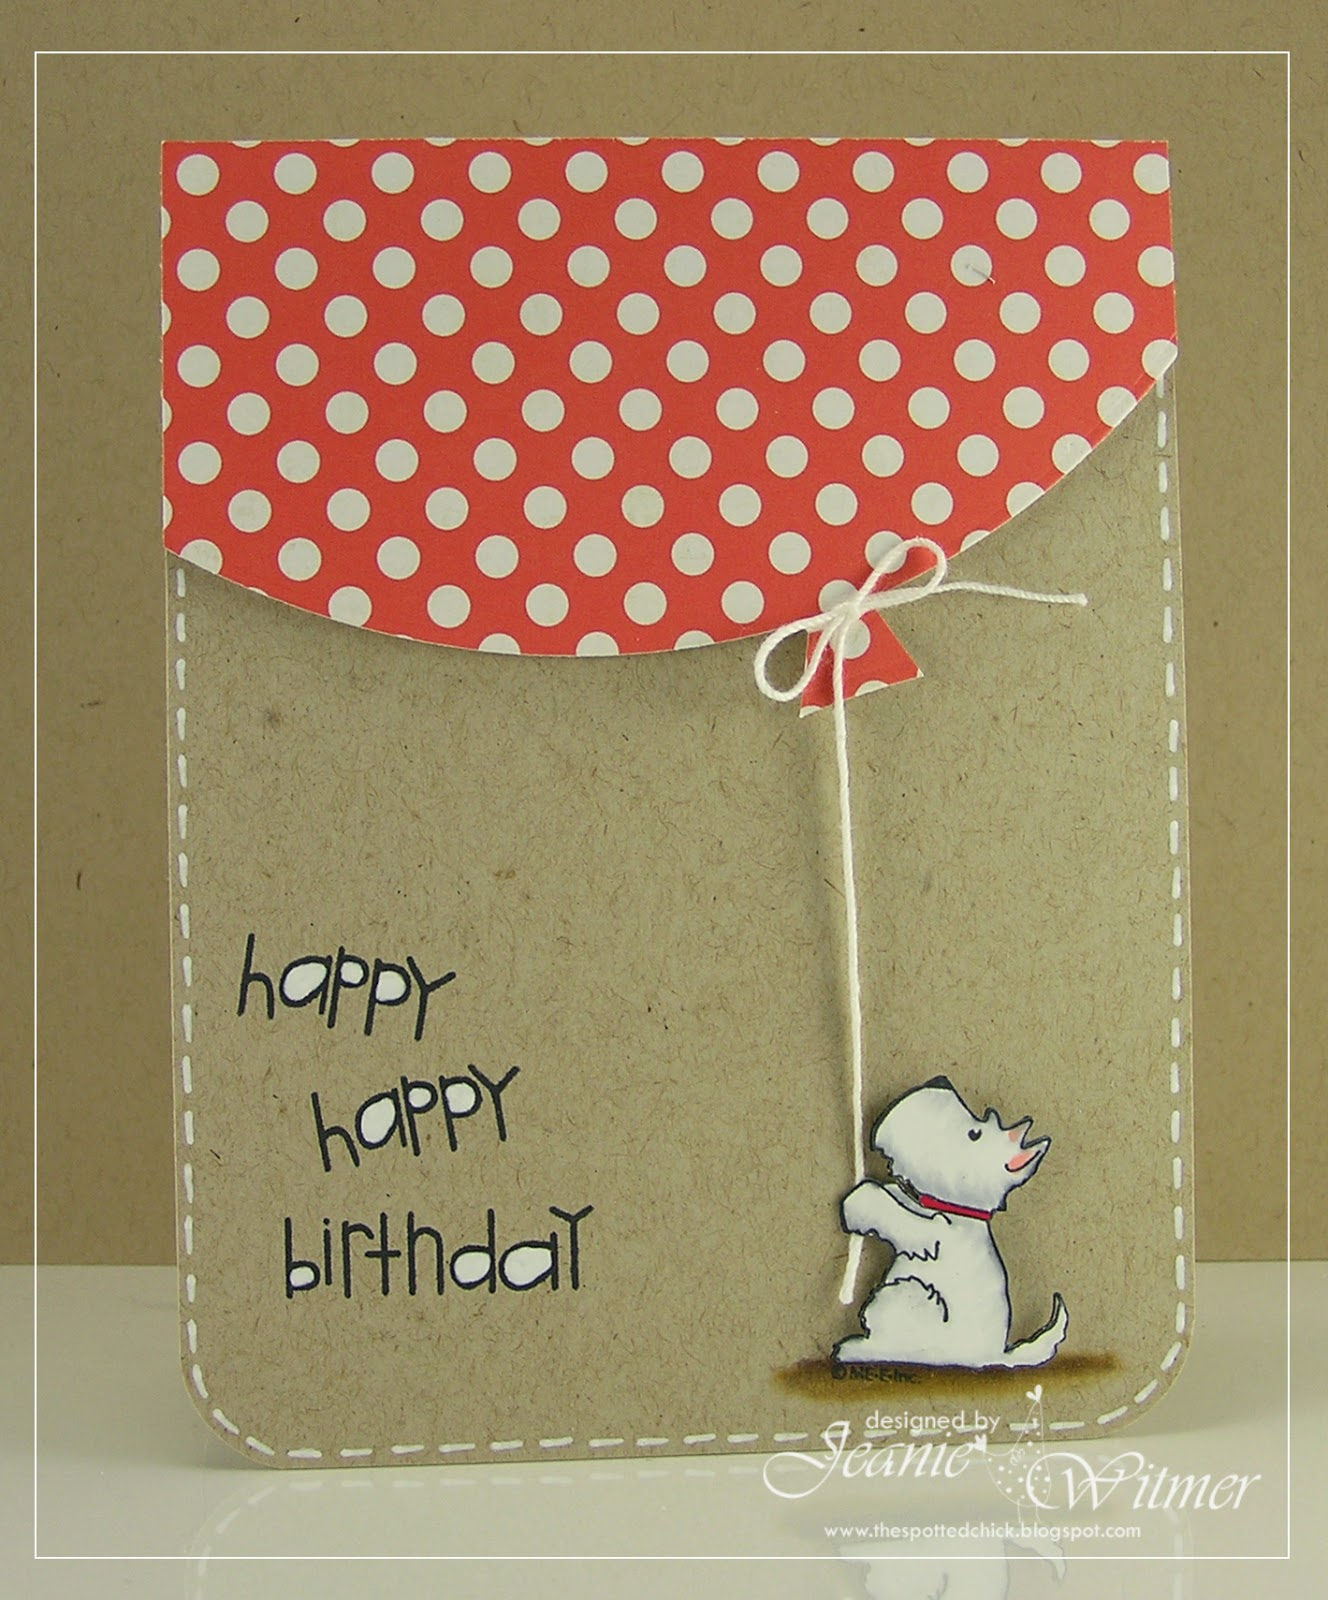 17 Best Images About Birthday Cards On Pinterest: Stamp & Scrapbook EXPO